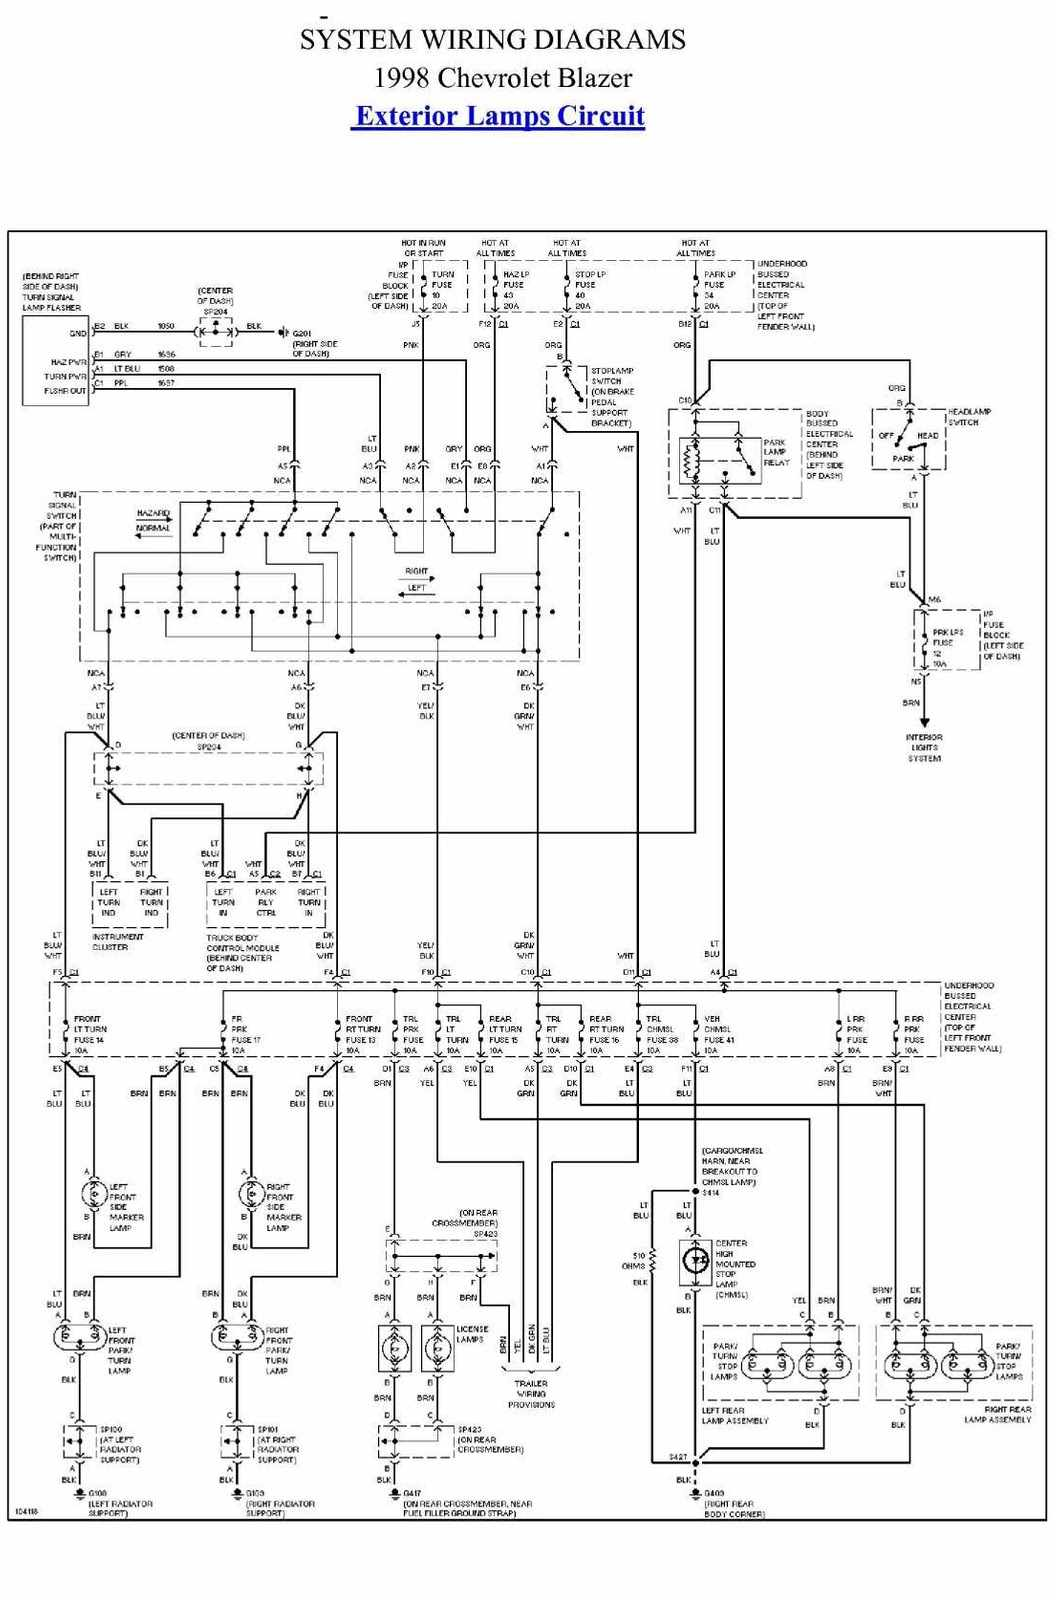 2002 bmw e46 wiring diagram with Ford Taurus Cket Diagram on 2000 Buick Lesabre Fuel Filter further Topic3121719 together with Vp44 also 02 BASICS Replacing Your Drive Belt also P 0996b43f80394eaa.